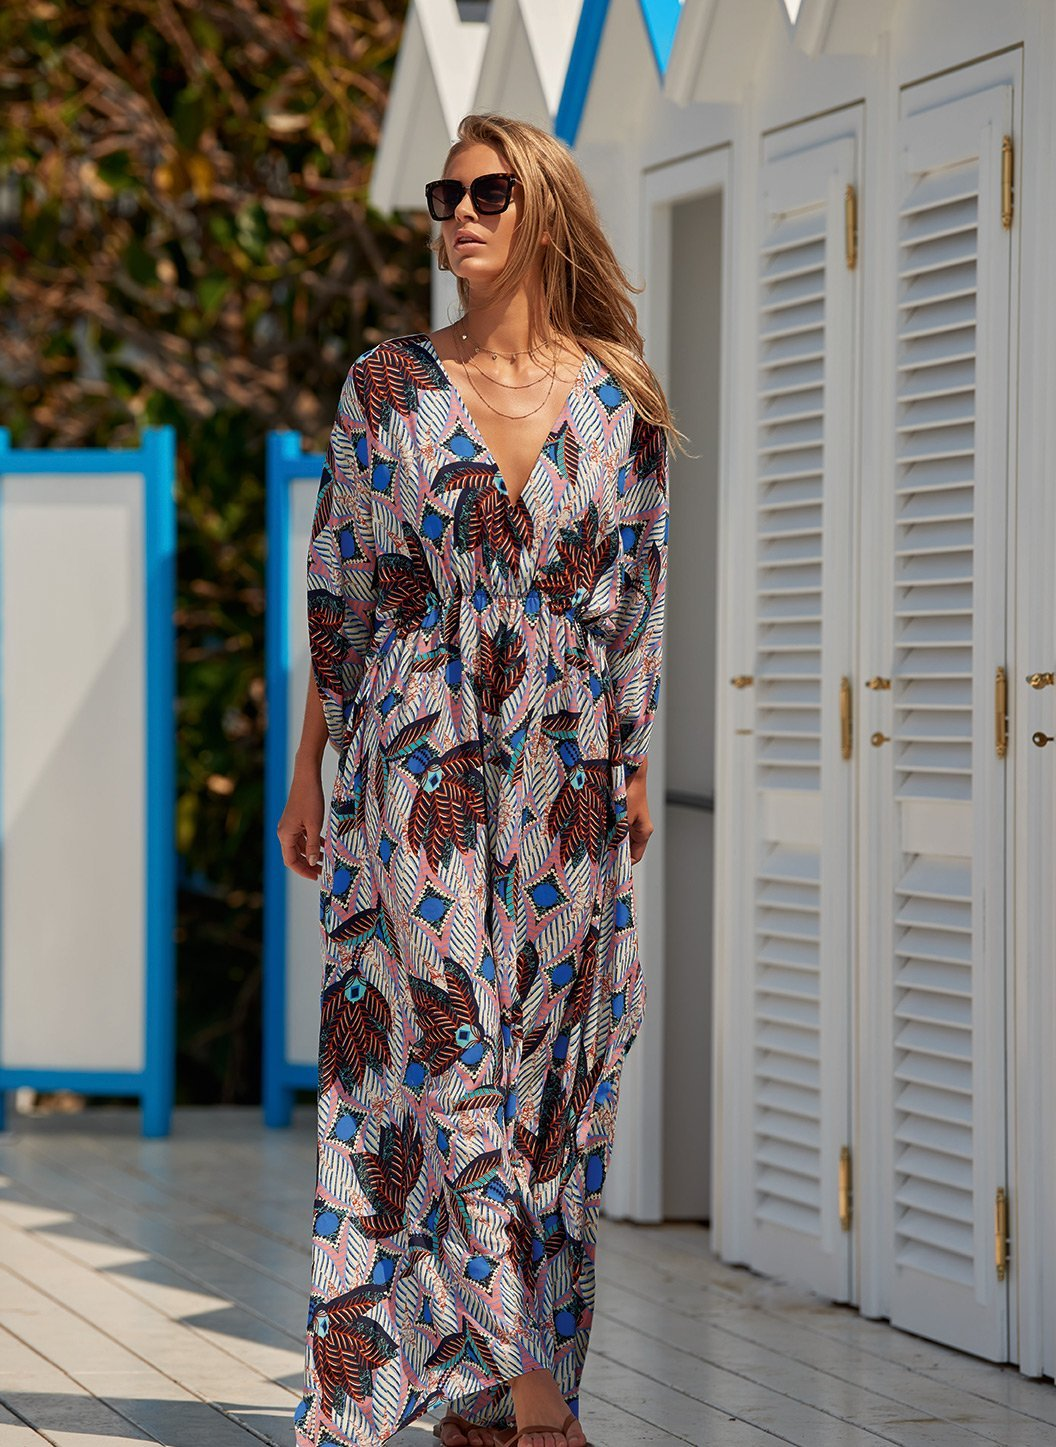 nicola boho vneck floor length dress lifestyle 2019